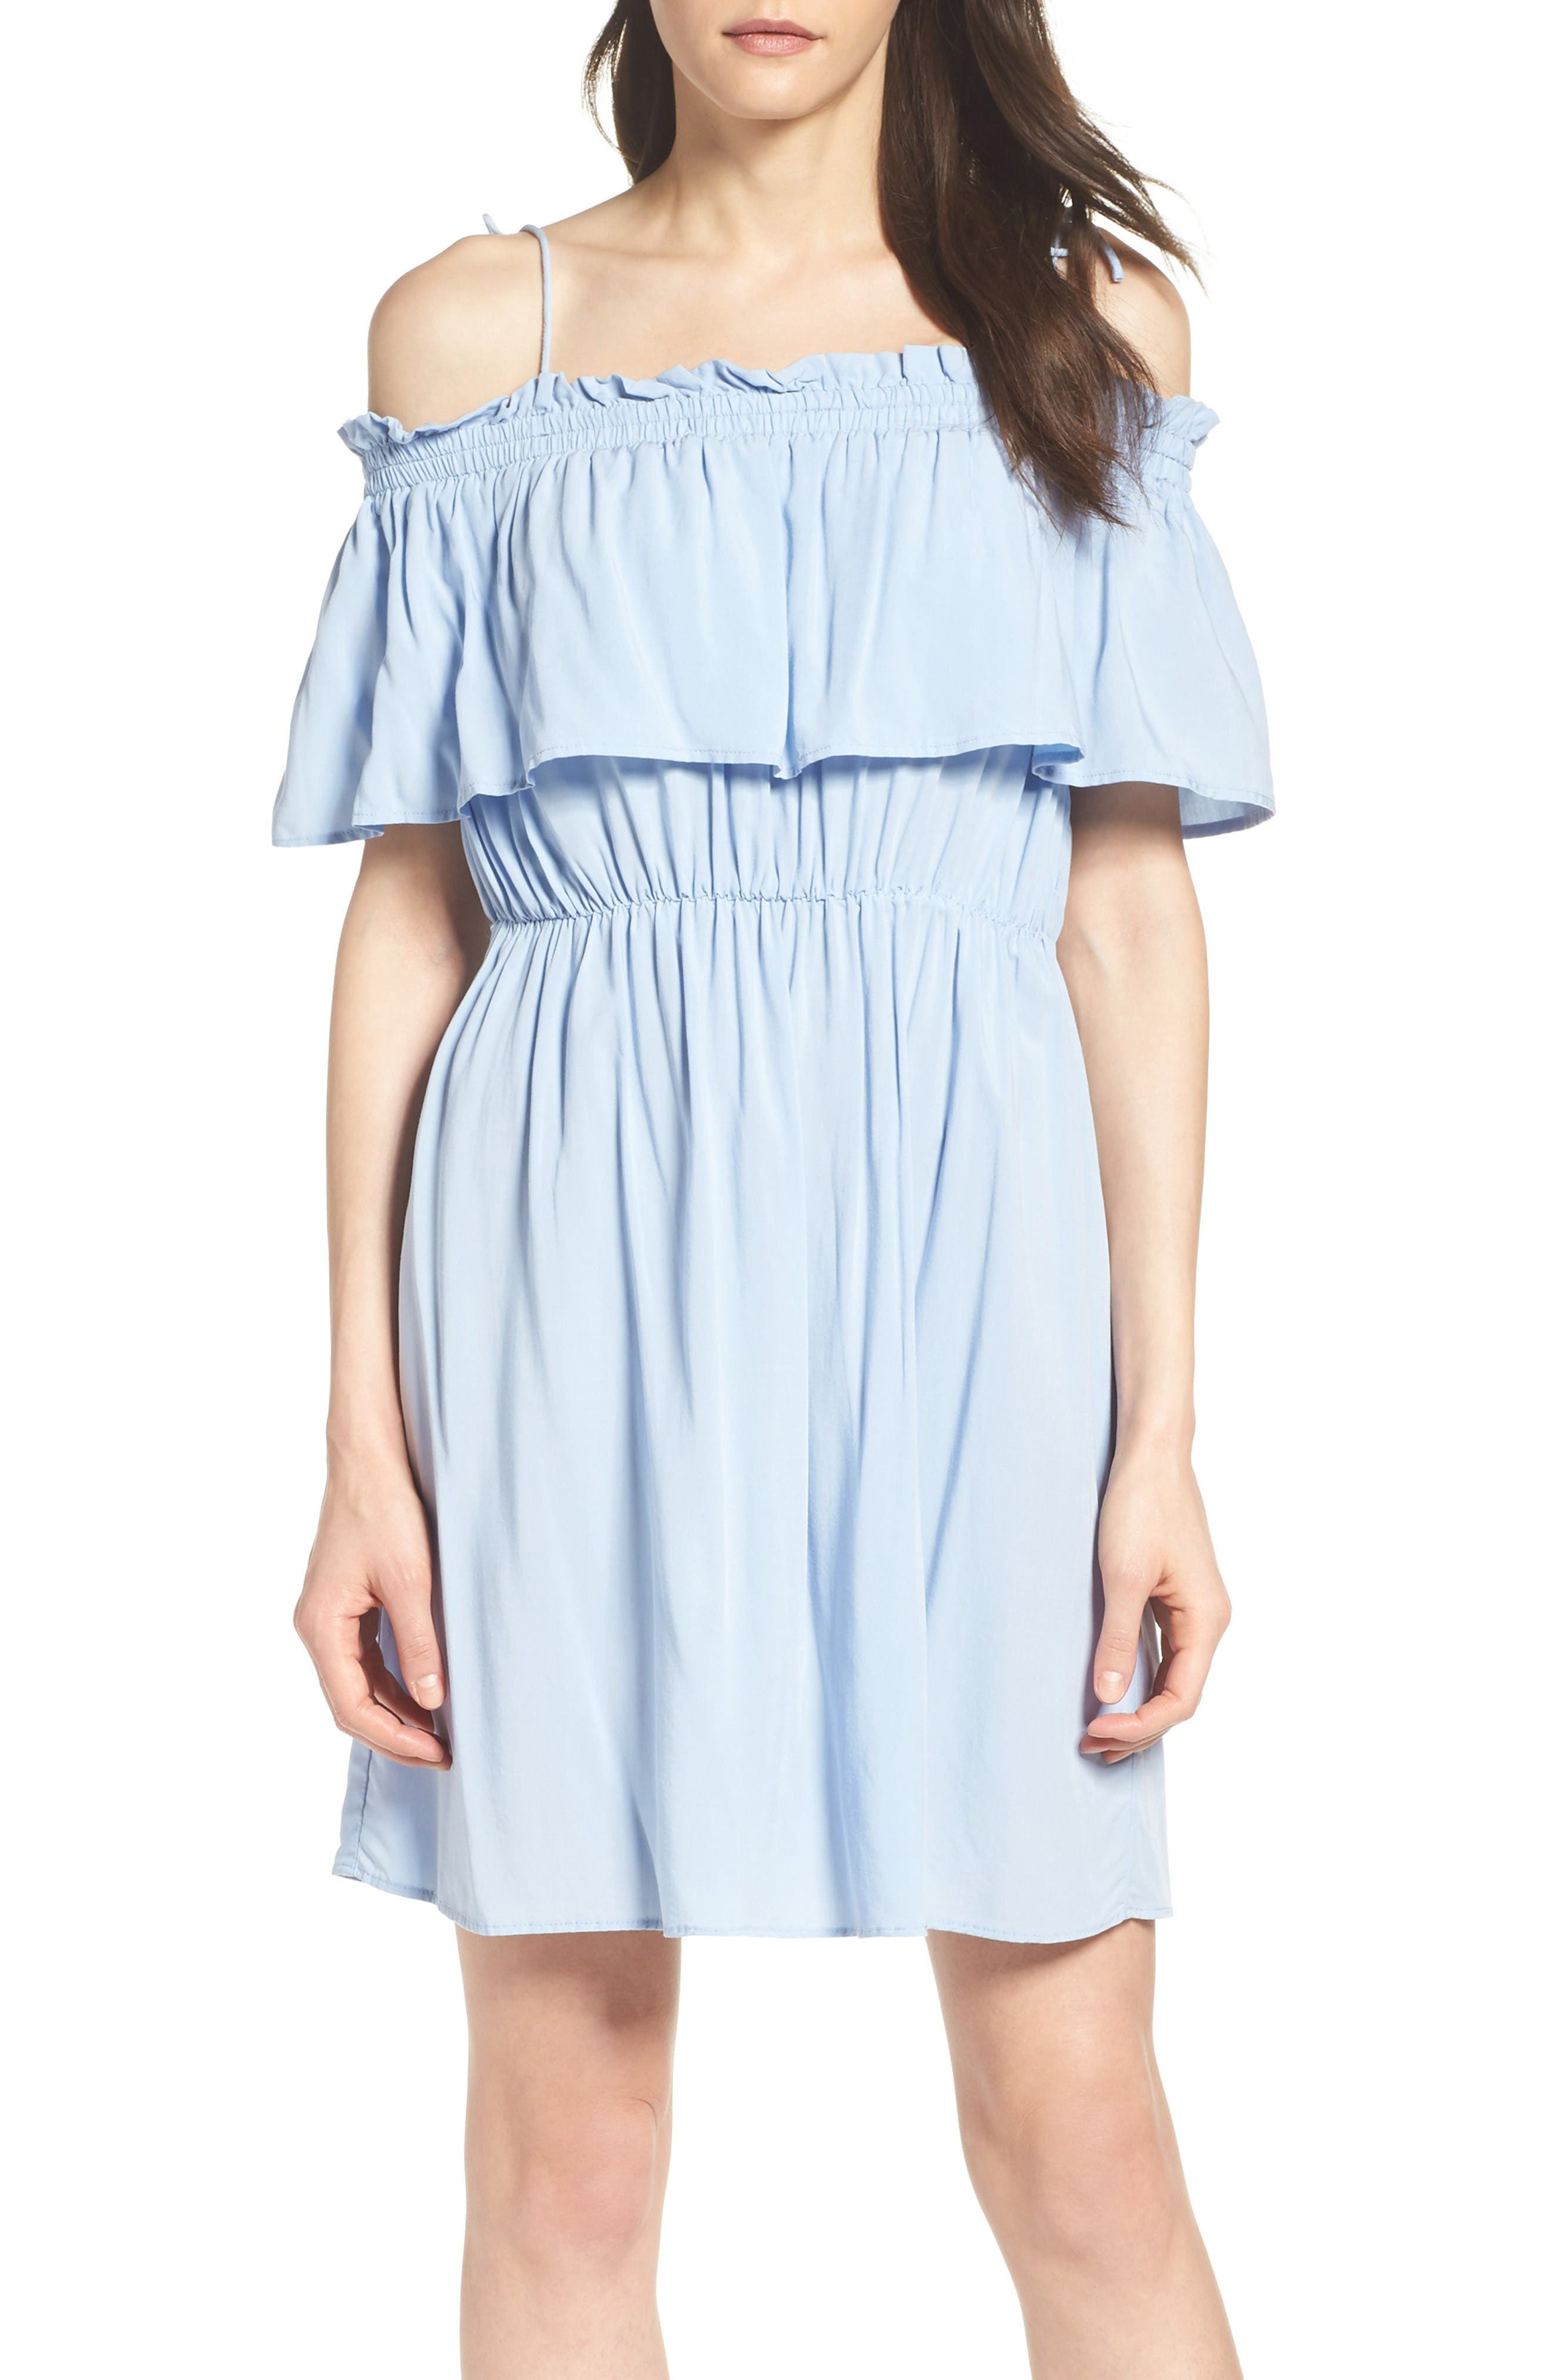 Chelsea Ruffle Bodice Off the Shoulder Dress,                         Main,                         color, Sky Blue